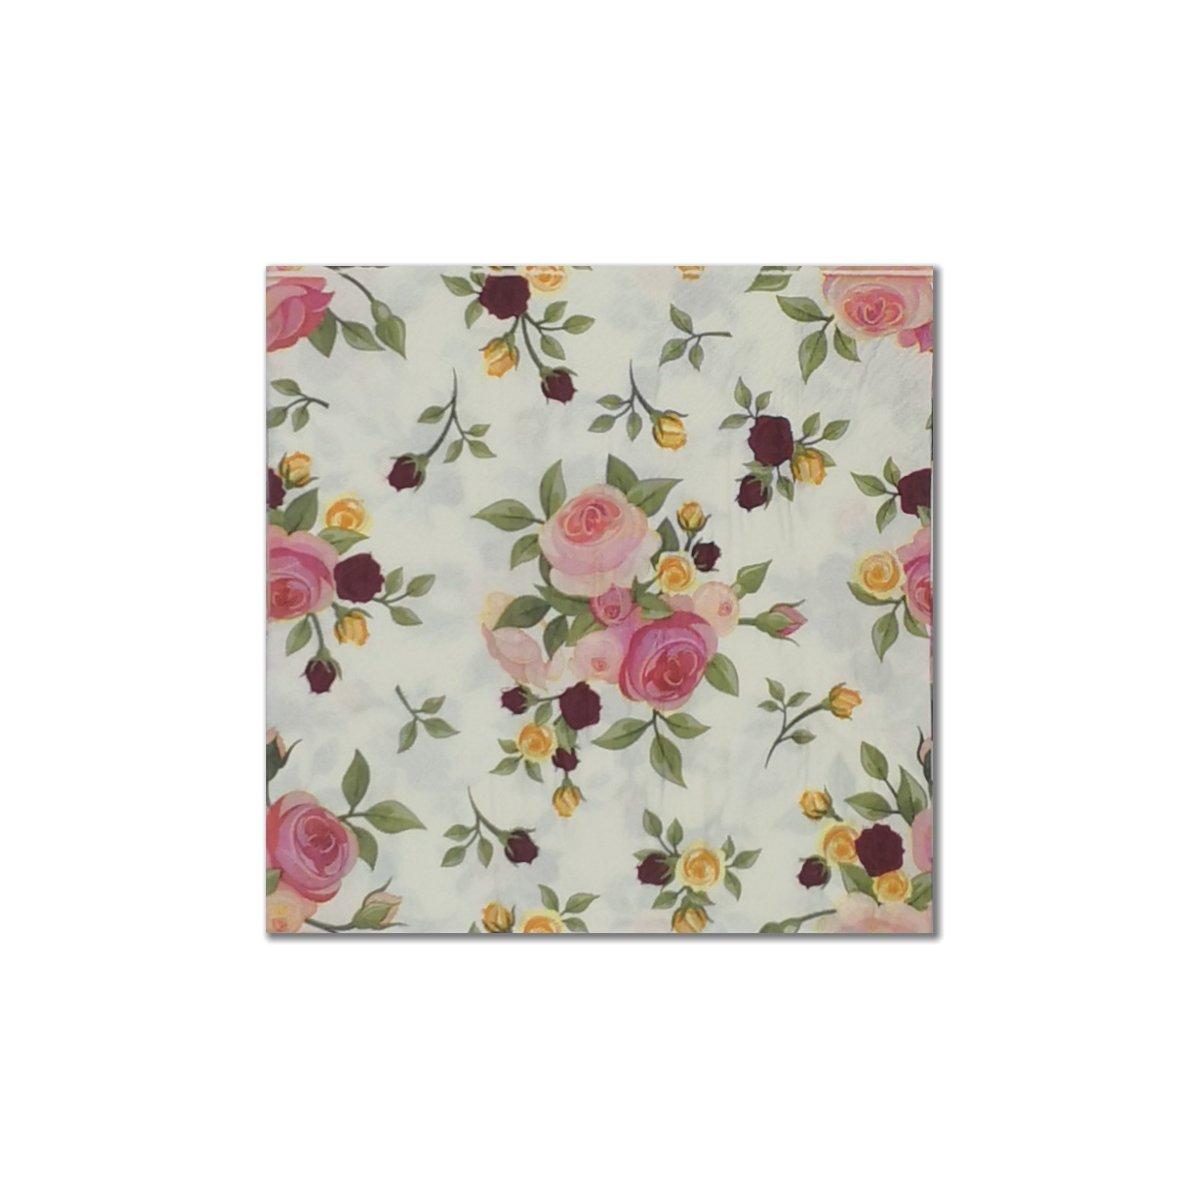 Printed Disposable Paper Napkins 3 Assorted Designs, 20-Count Each, Total: 60-Count